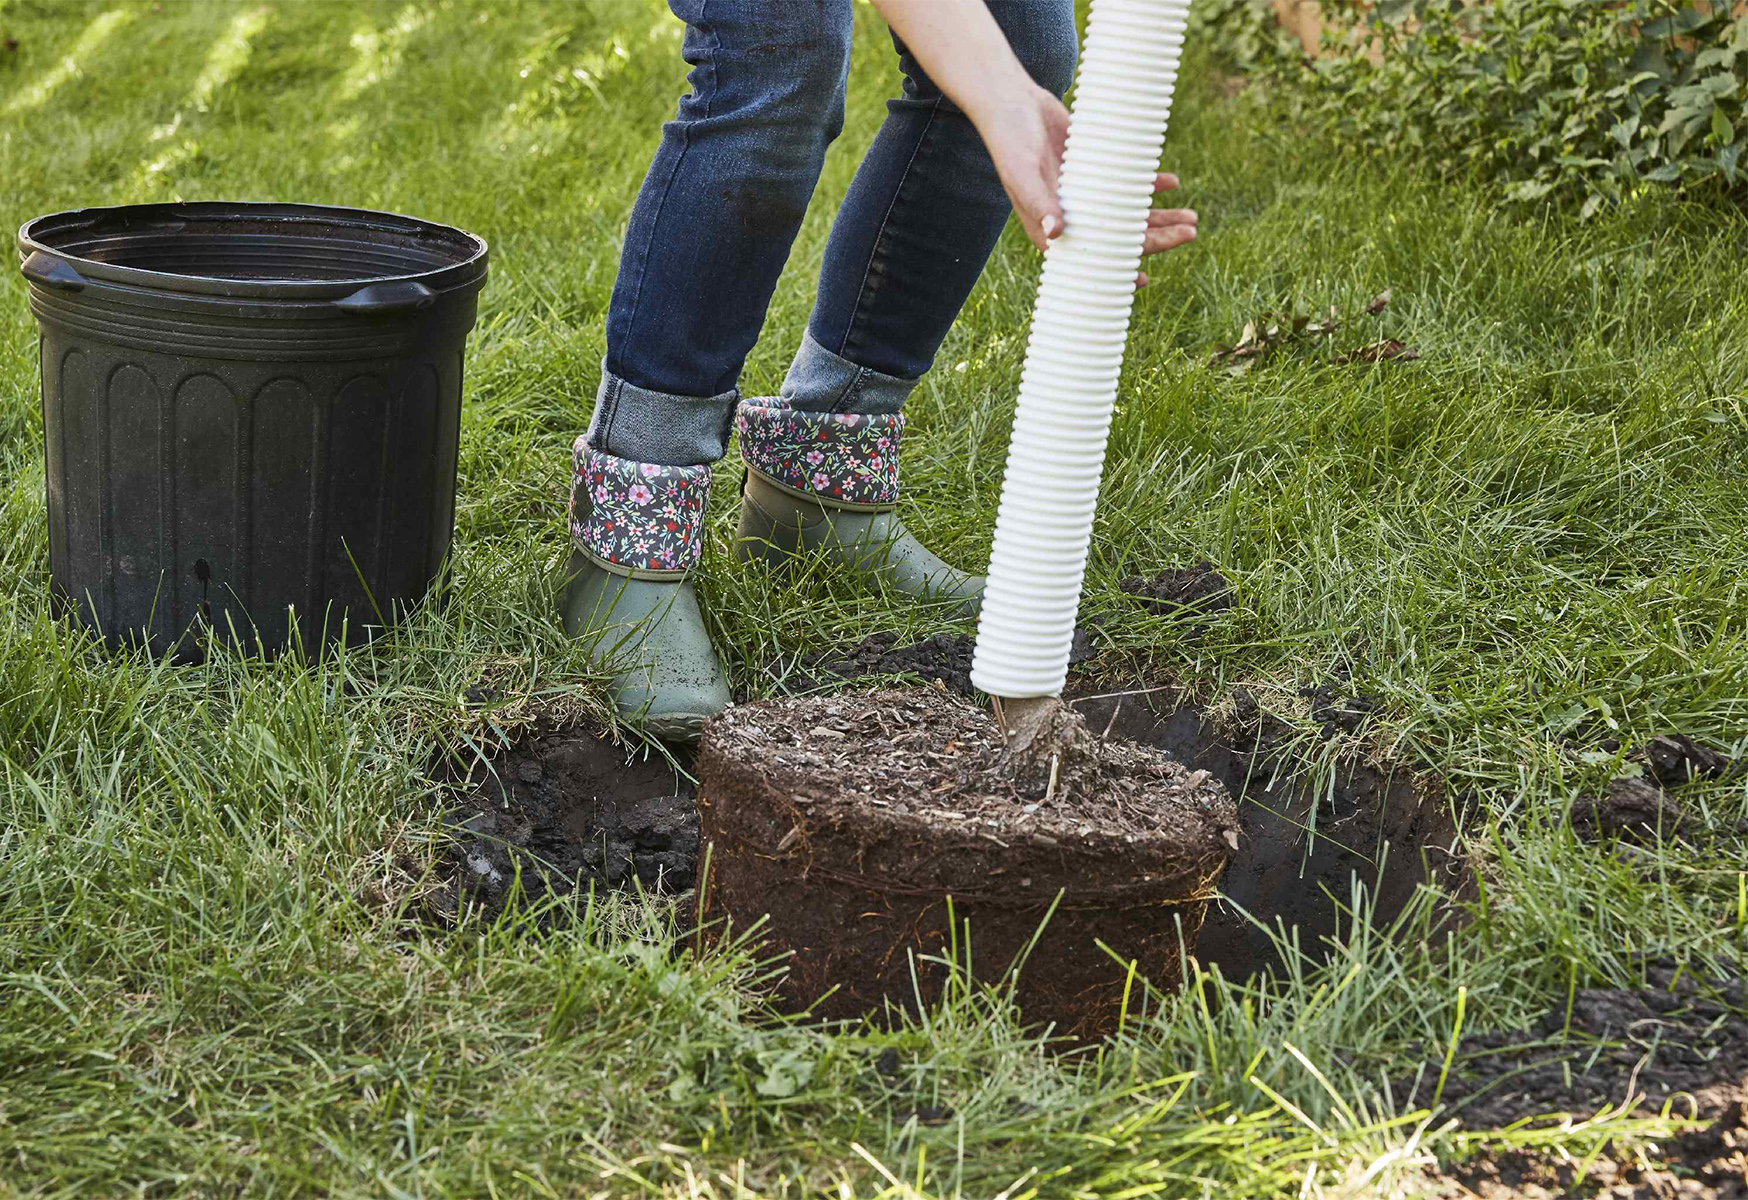 The Proper Way to Plant a Tree | Better Homes & Gardens